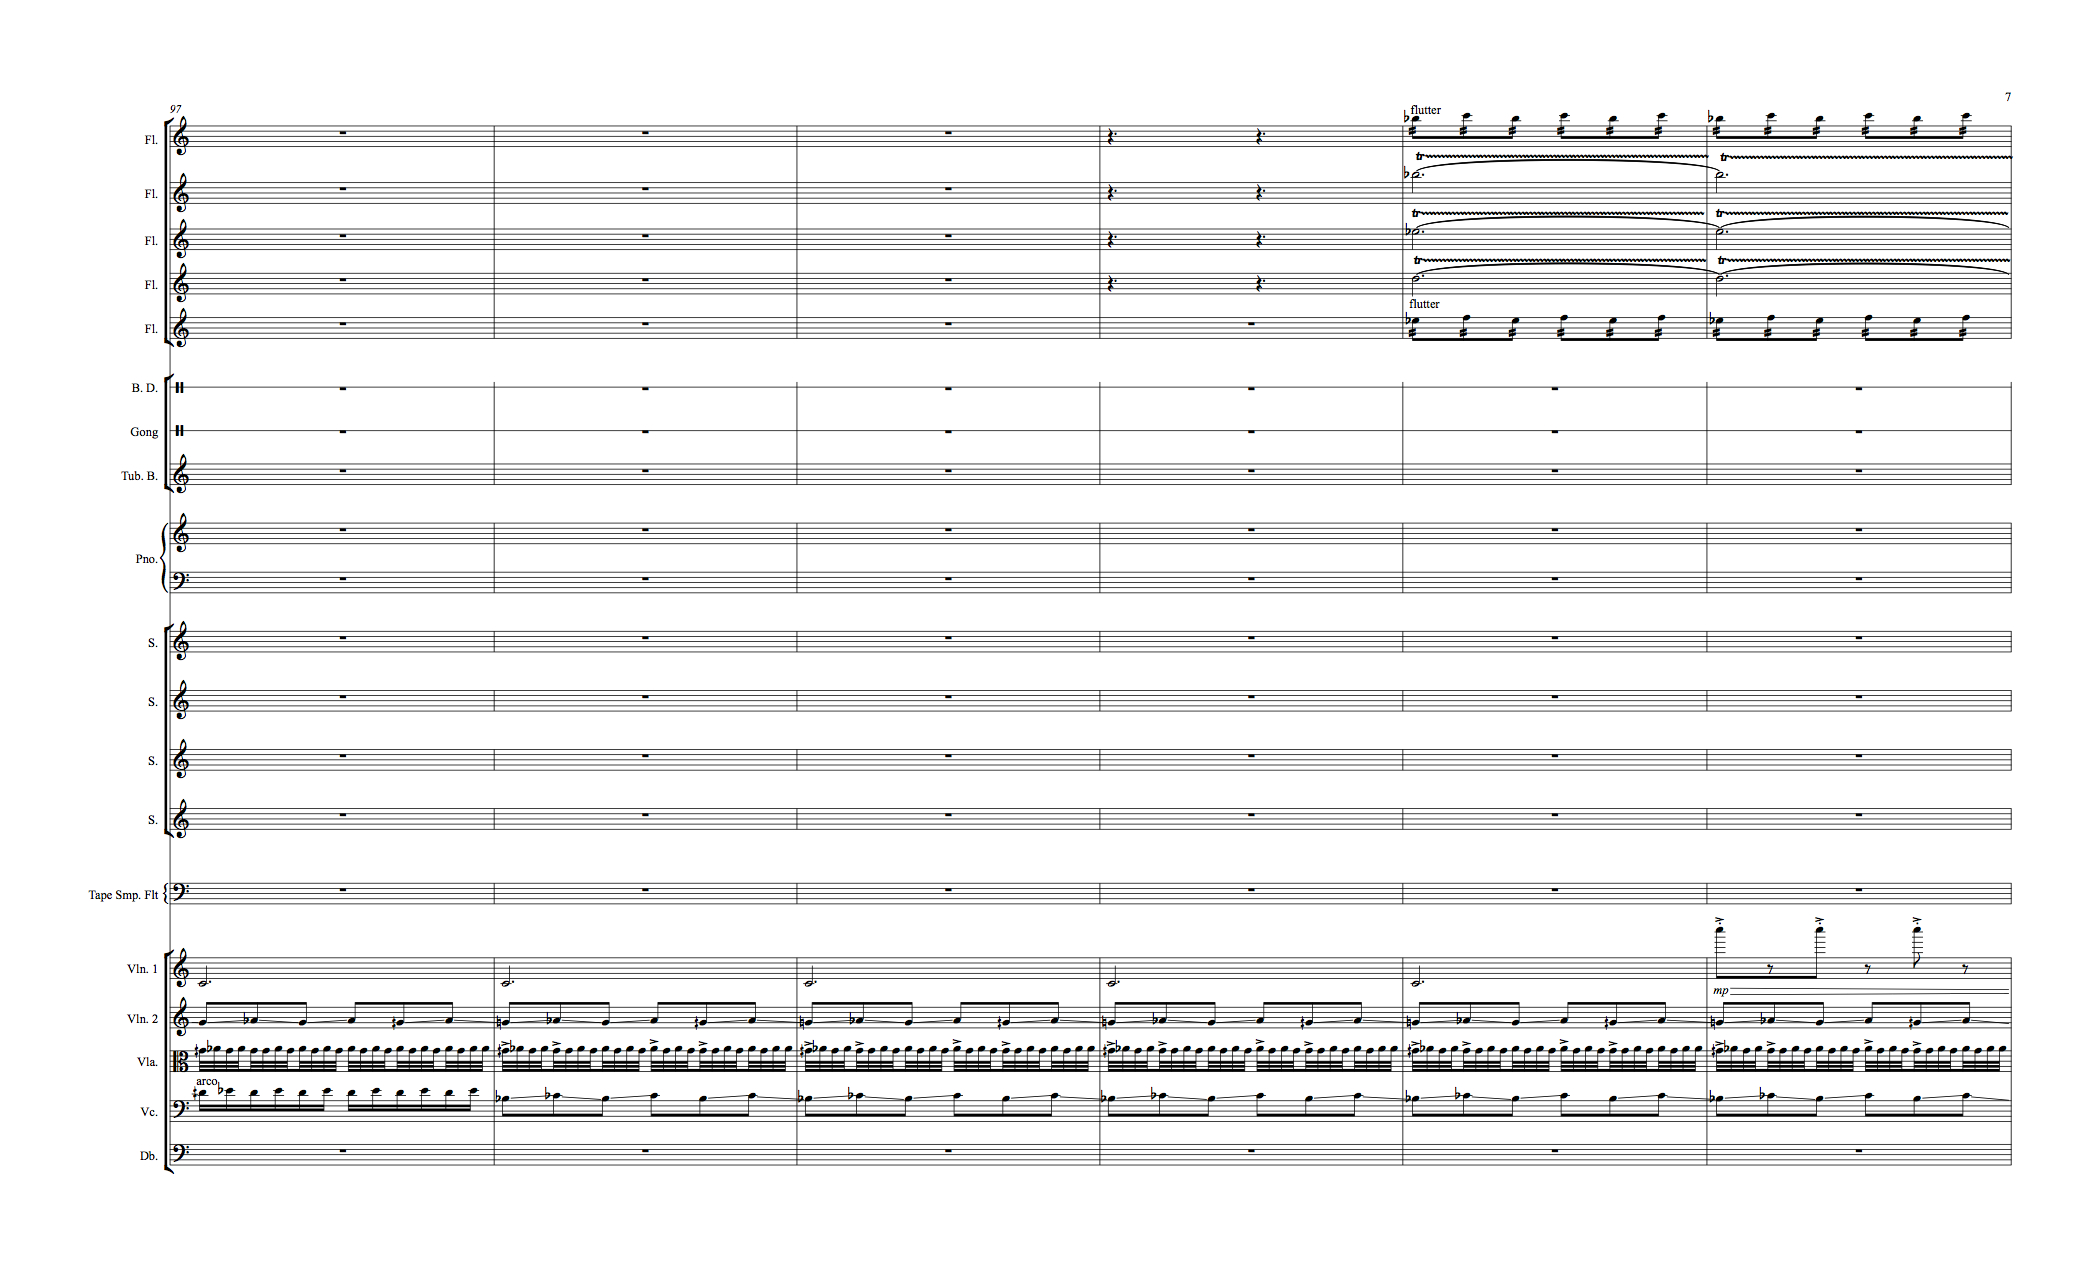 Automatic_heart_distort_final_3_25 - score and parts=7.jpg